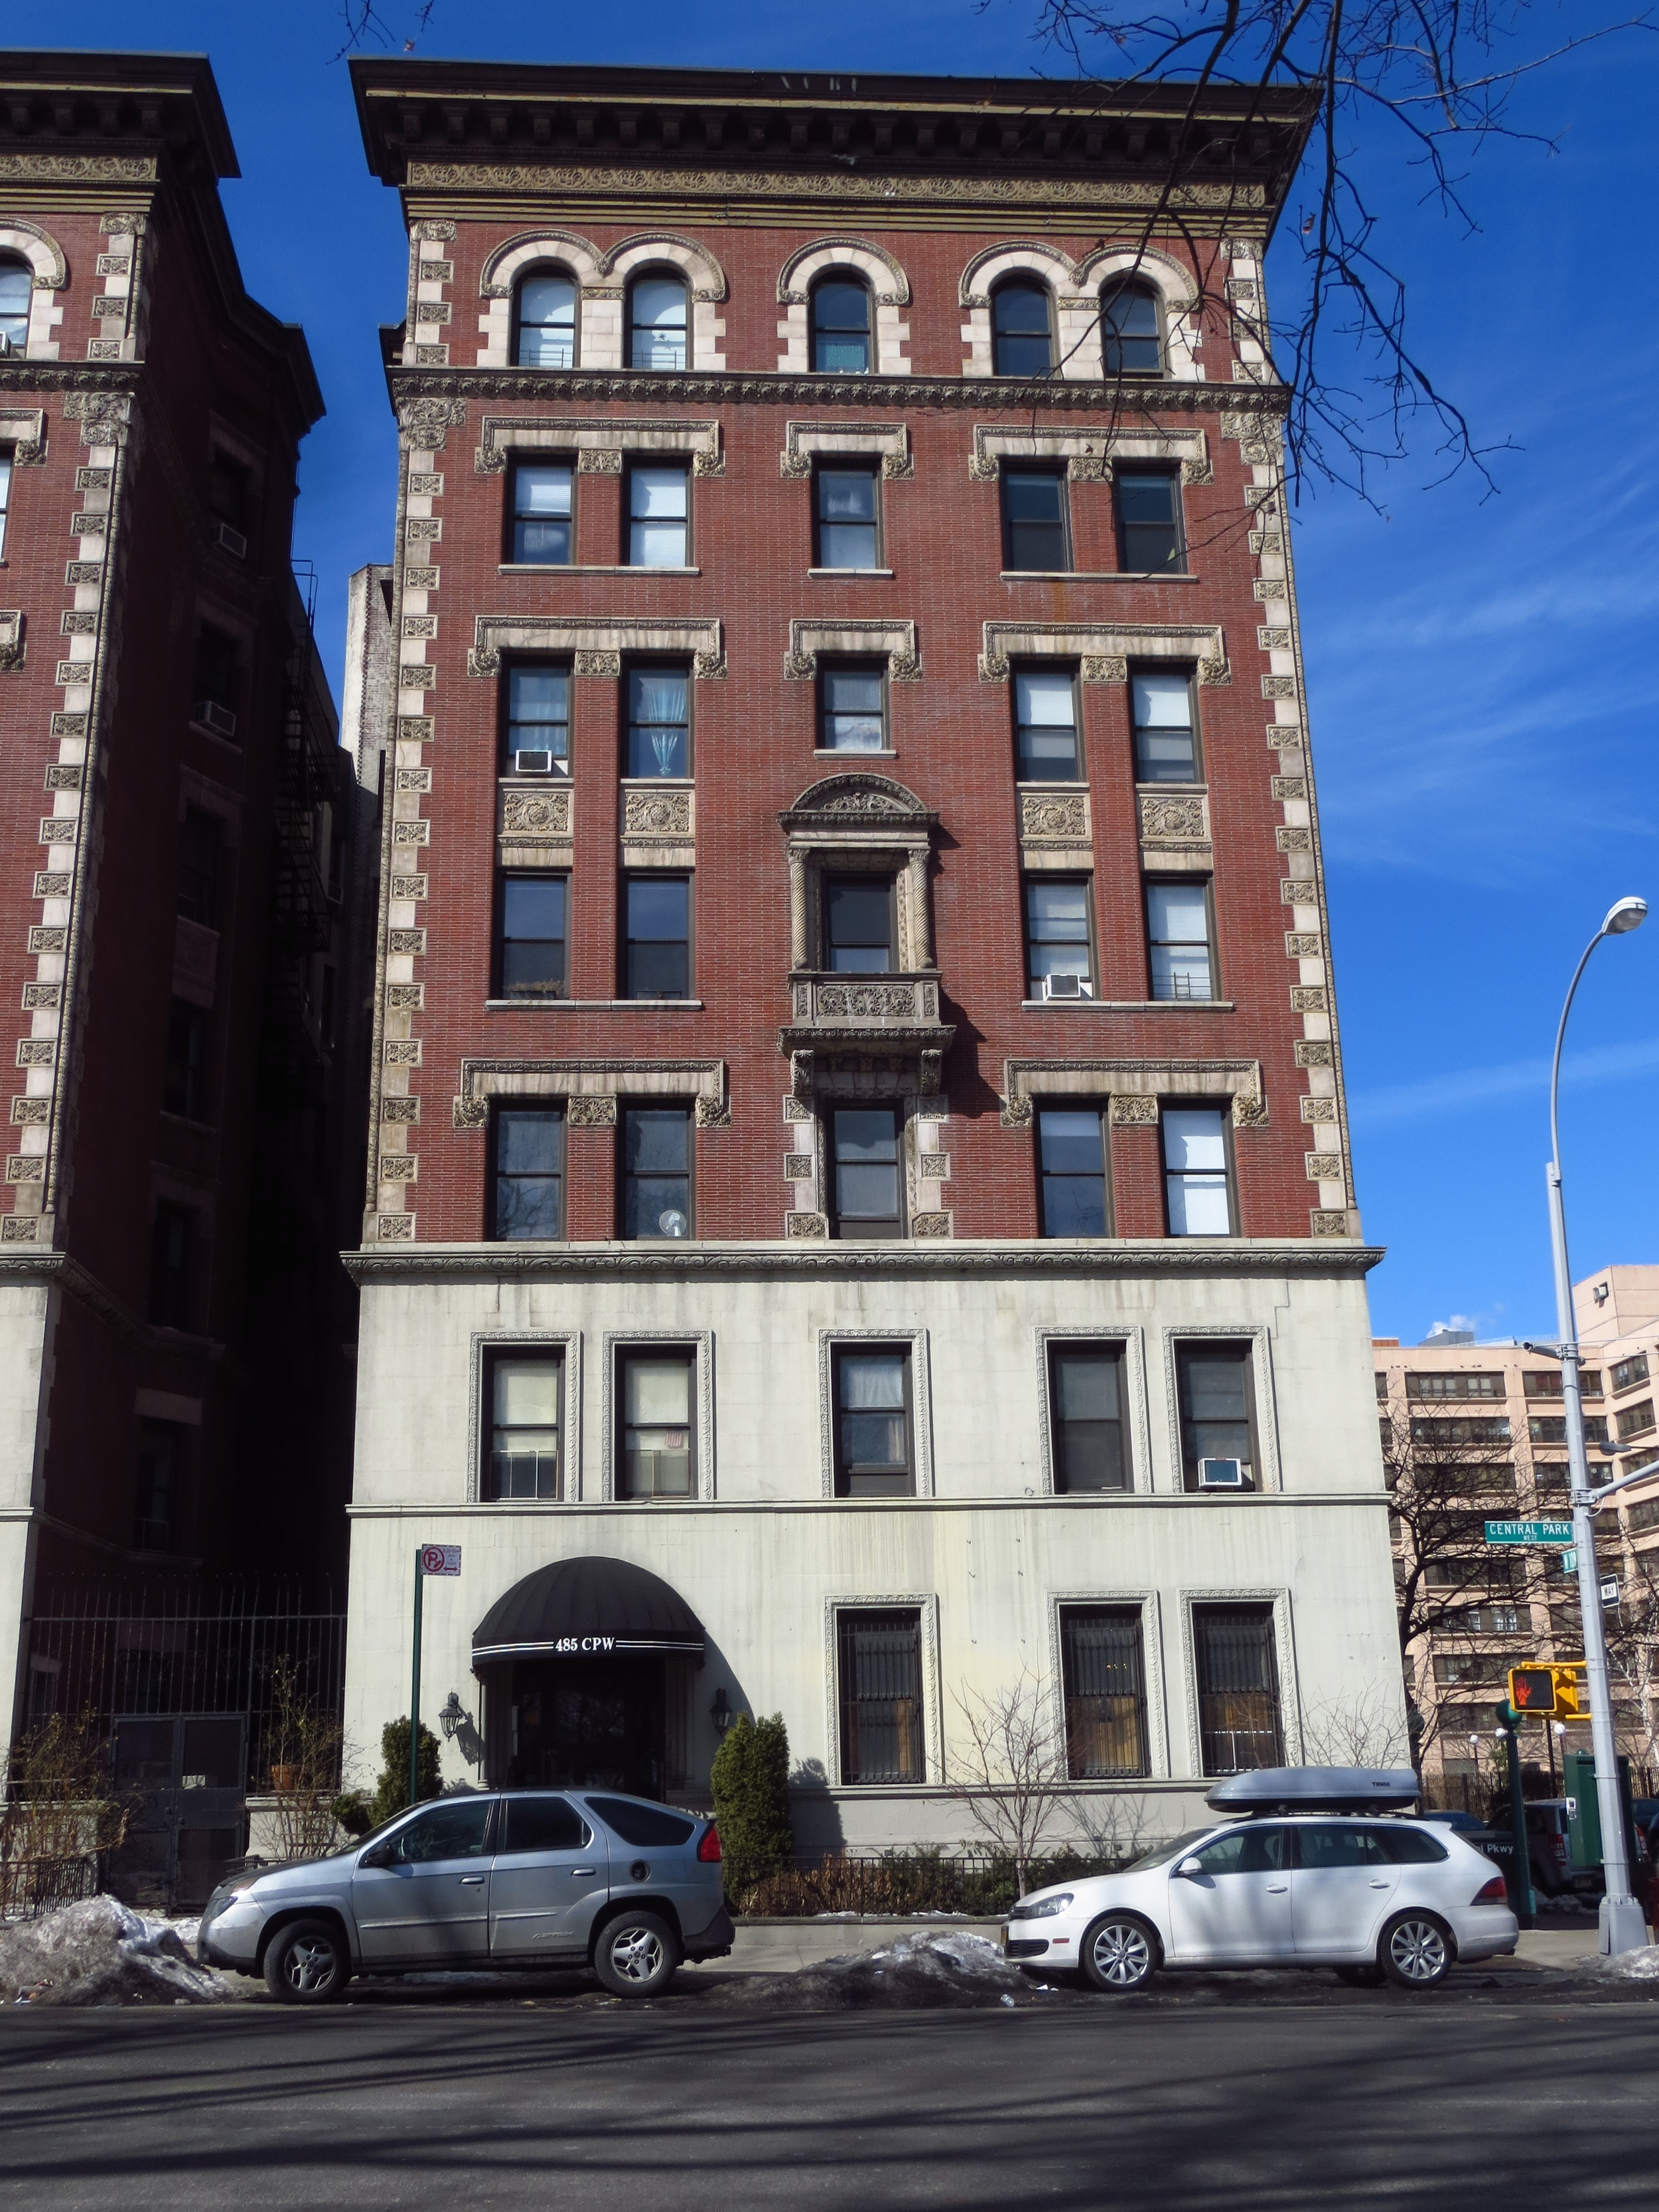 Beginning of Central Park West apartment buildings